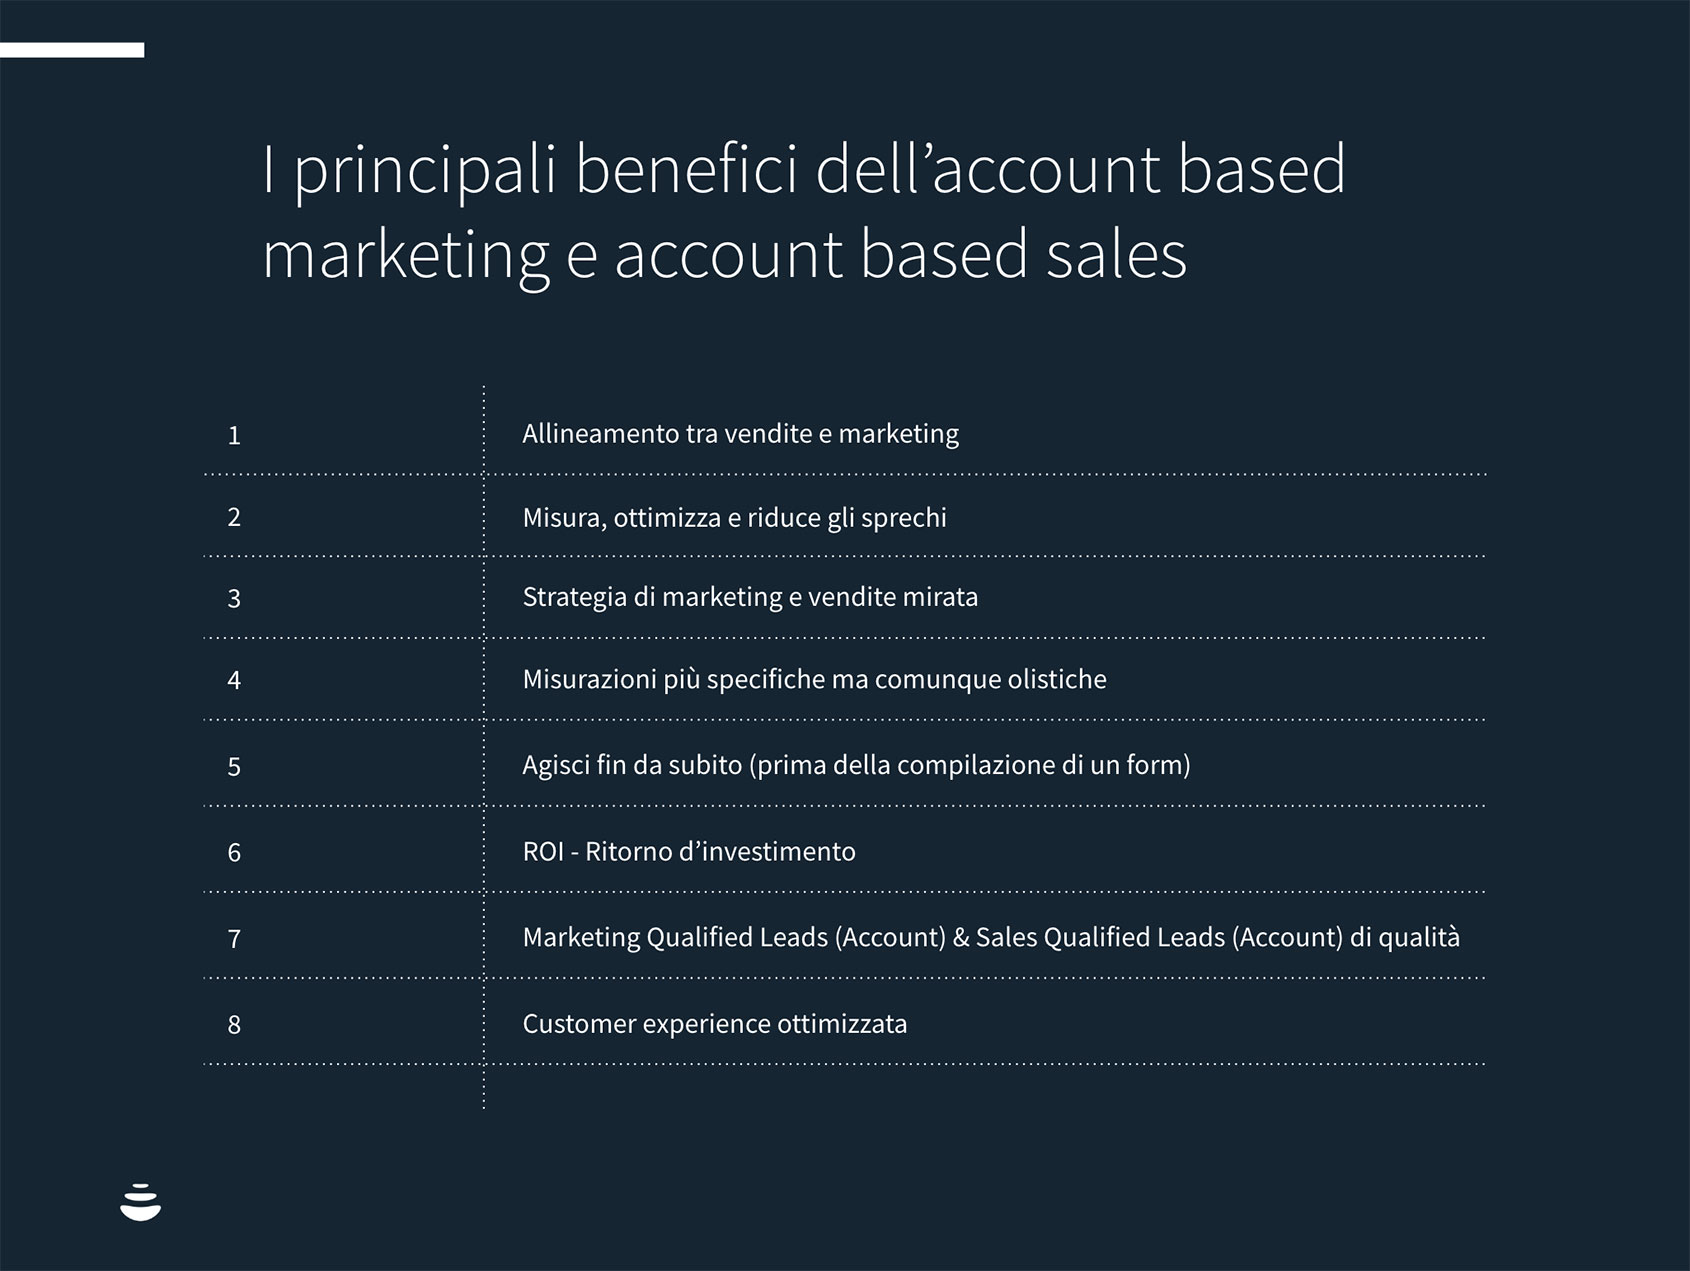 I principali benefici dell'account based marketing